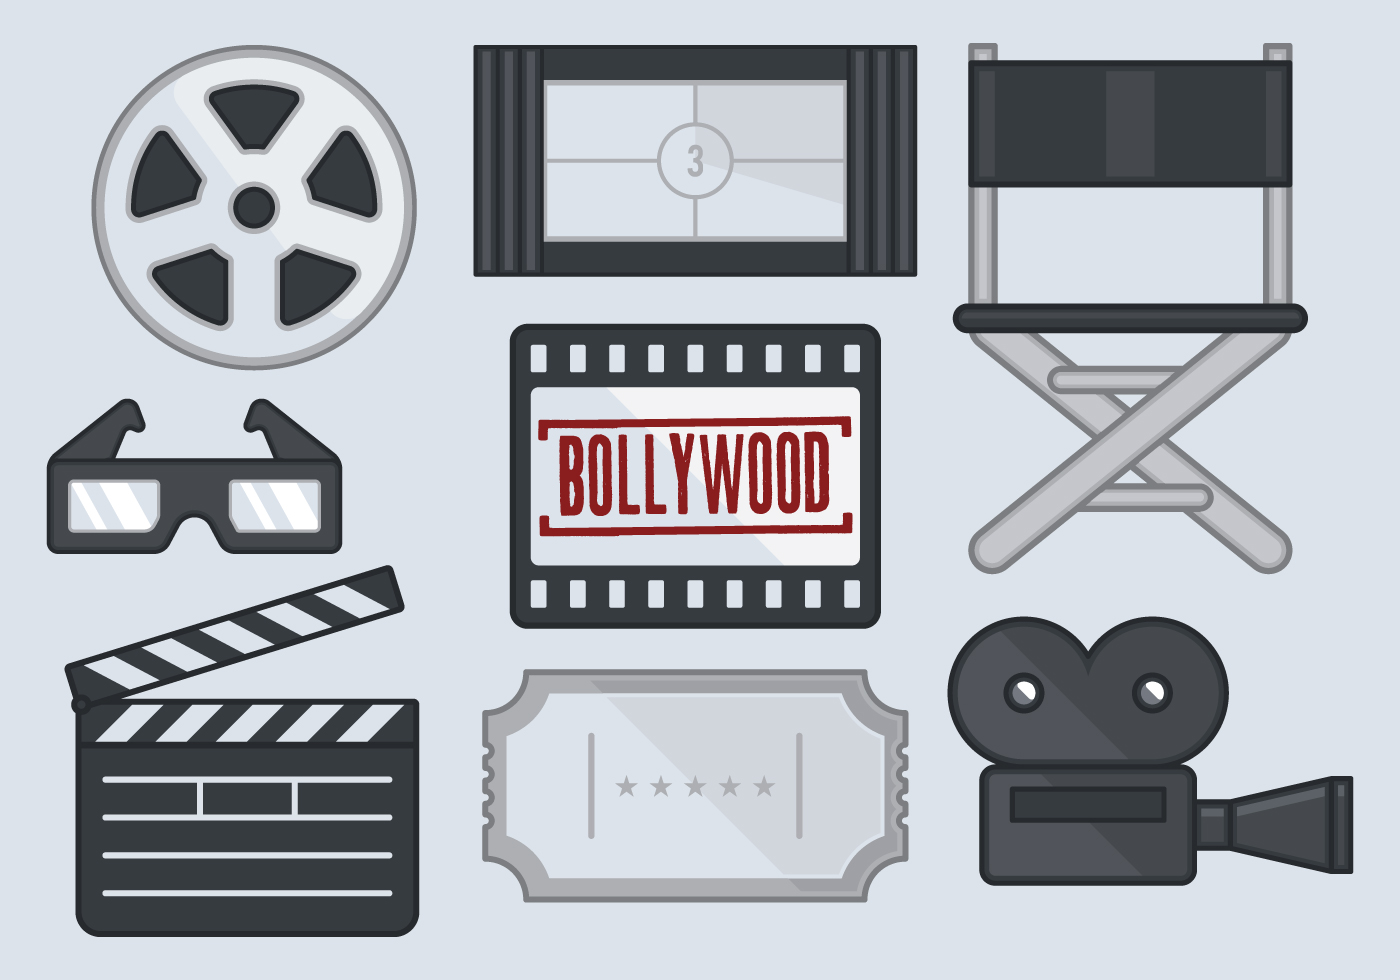 Bollywood Movie Icon Download Free Vectors Clipart Graphics Vector Art Free vector icons in svg, psd, png, eps and icon font. https www vecteezy com vector art 124085 bollywood movie icon